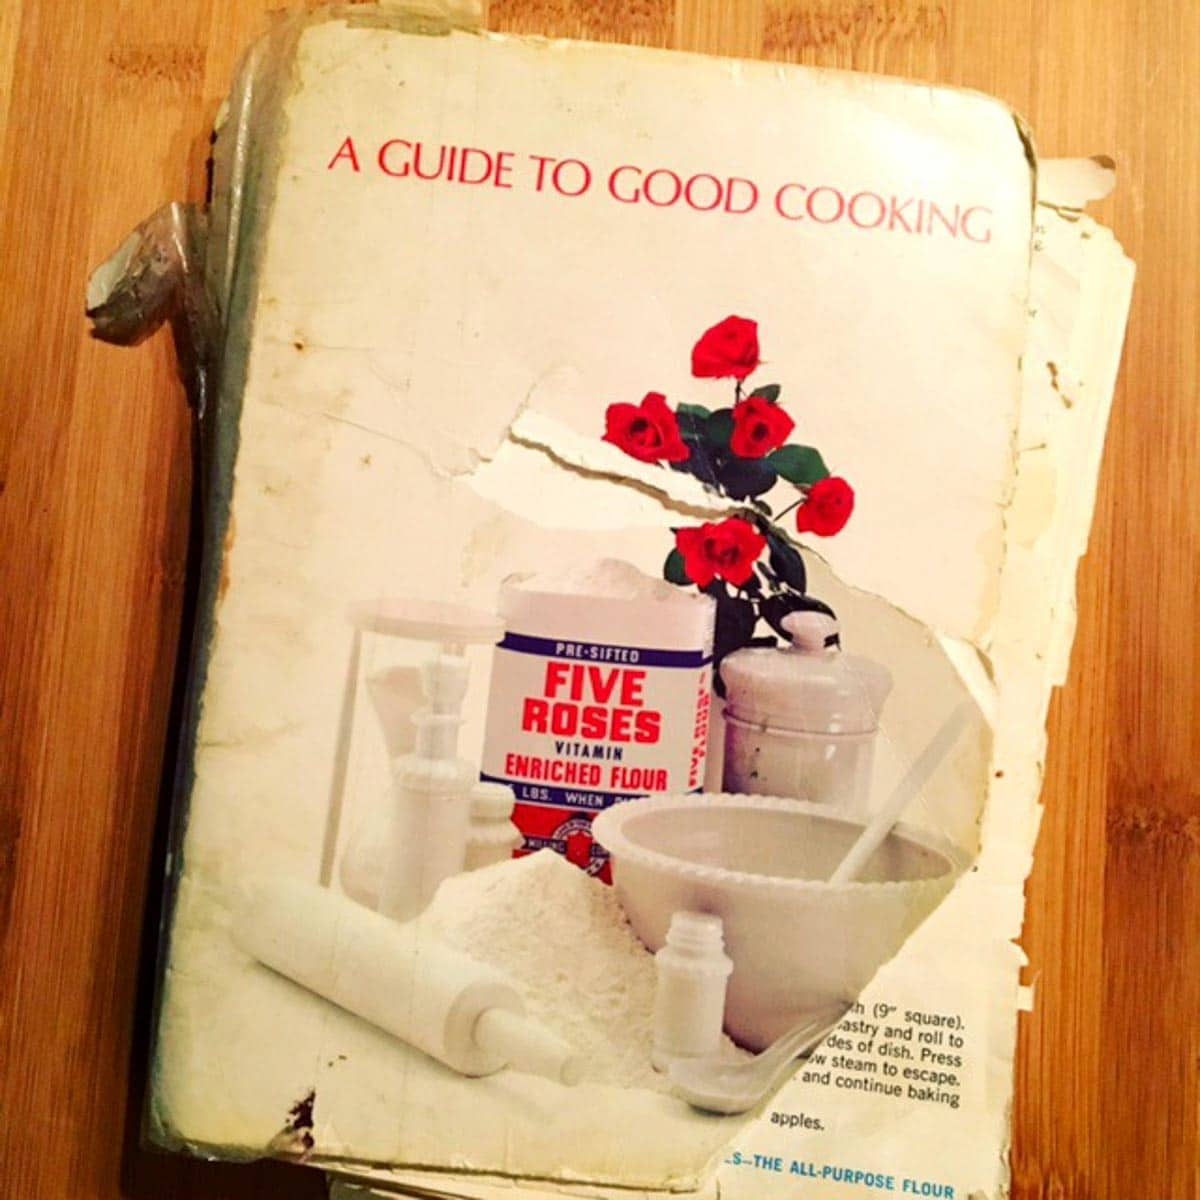 a worn out copy of the Five Roses Cookbook sitting on a table